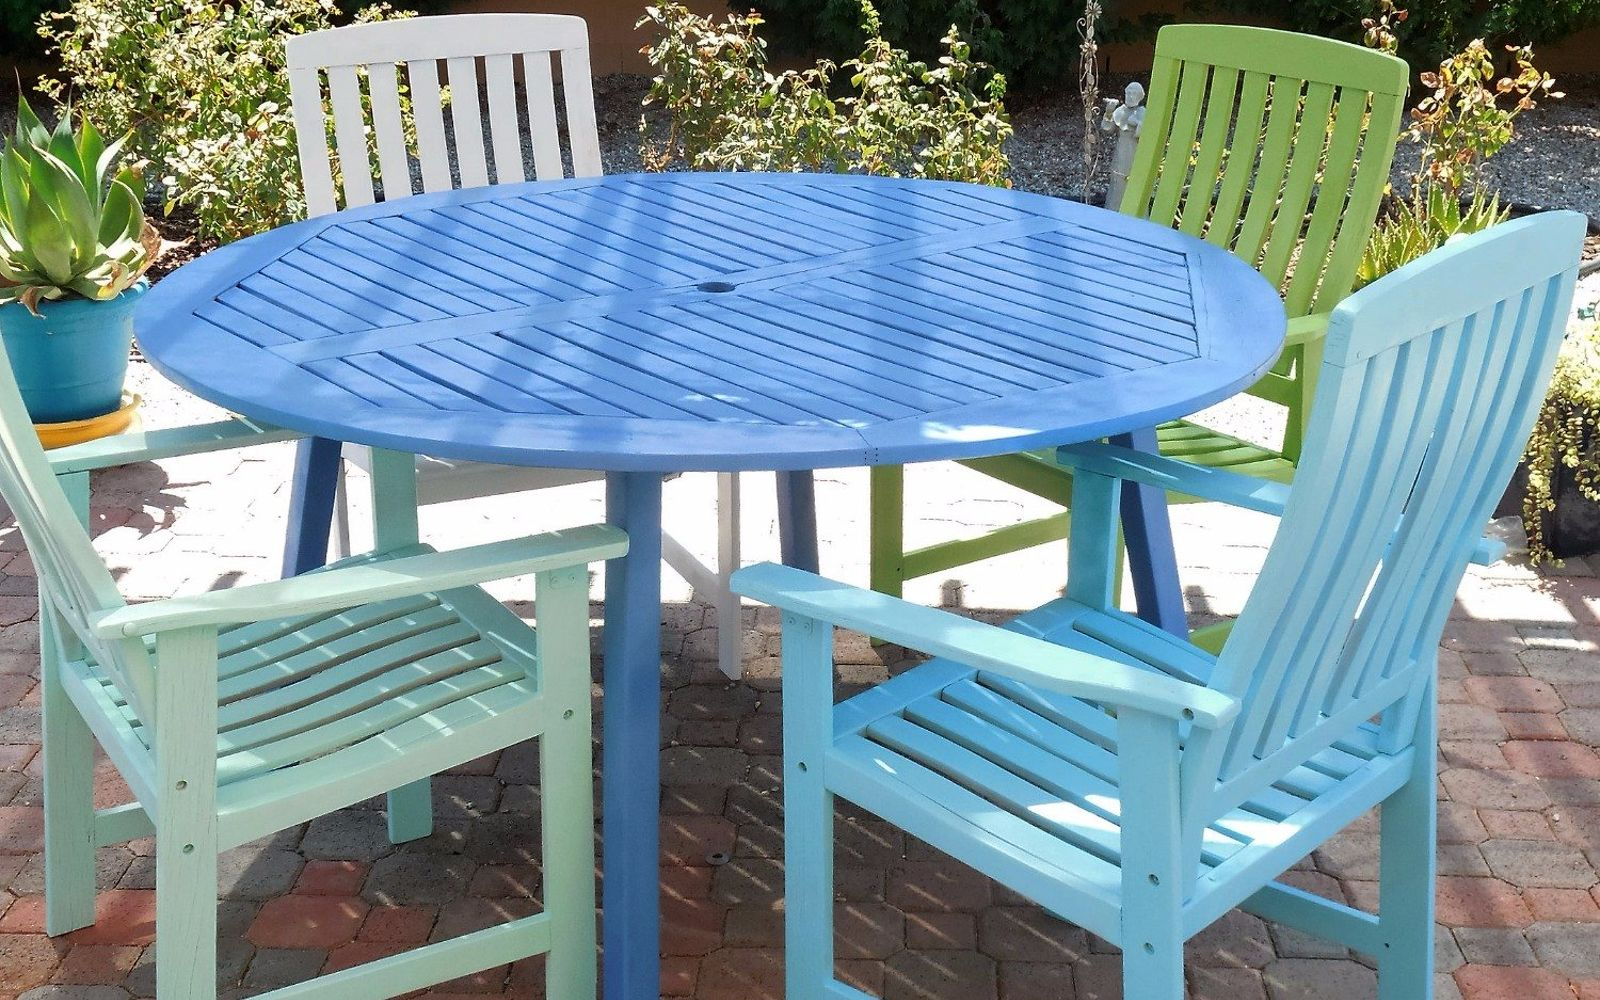 s 15 decorative ways your family can pretty up your patio, Paint Multicolored Chairs For A Table